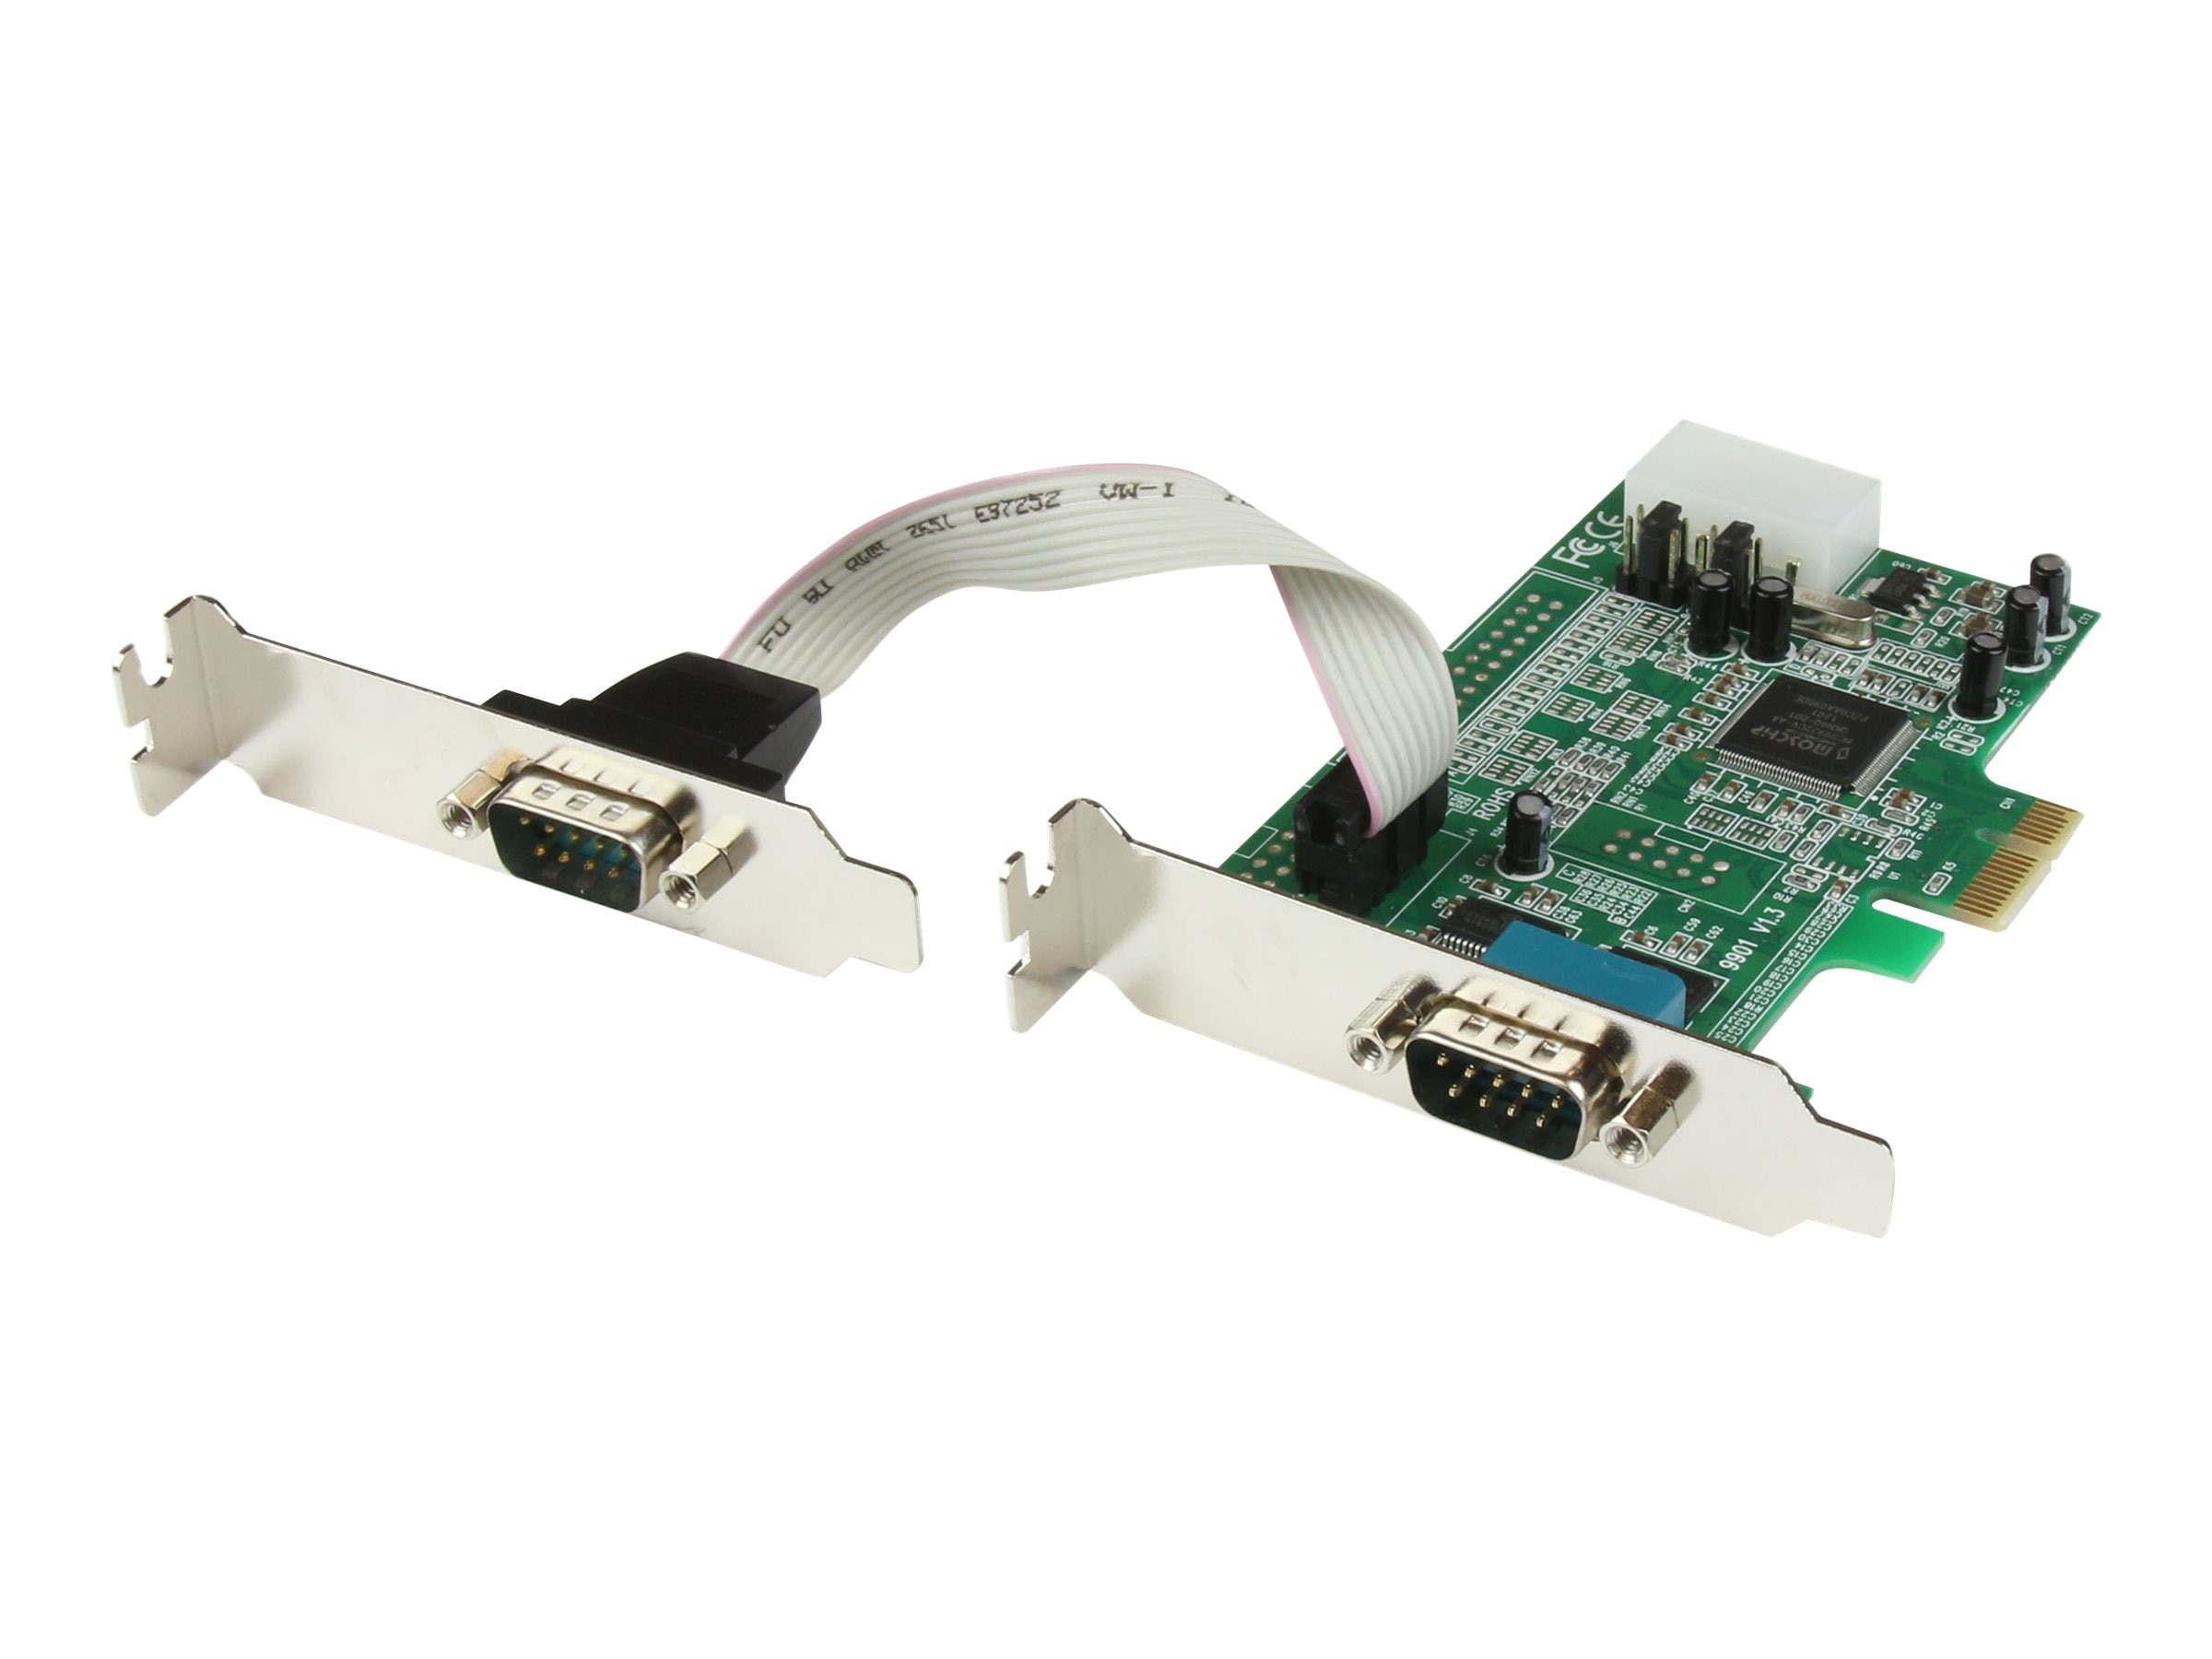 StarTech.com 2 Port Low Profile Native RS232 PCI Express Serial Card with 16550 UART, PEX2S553LP